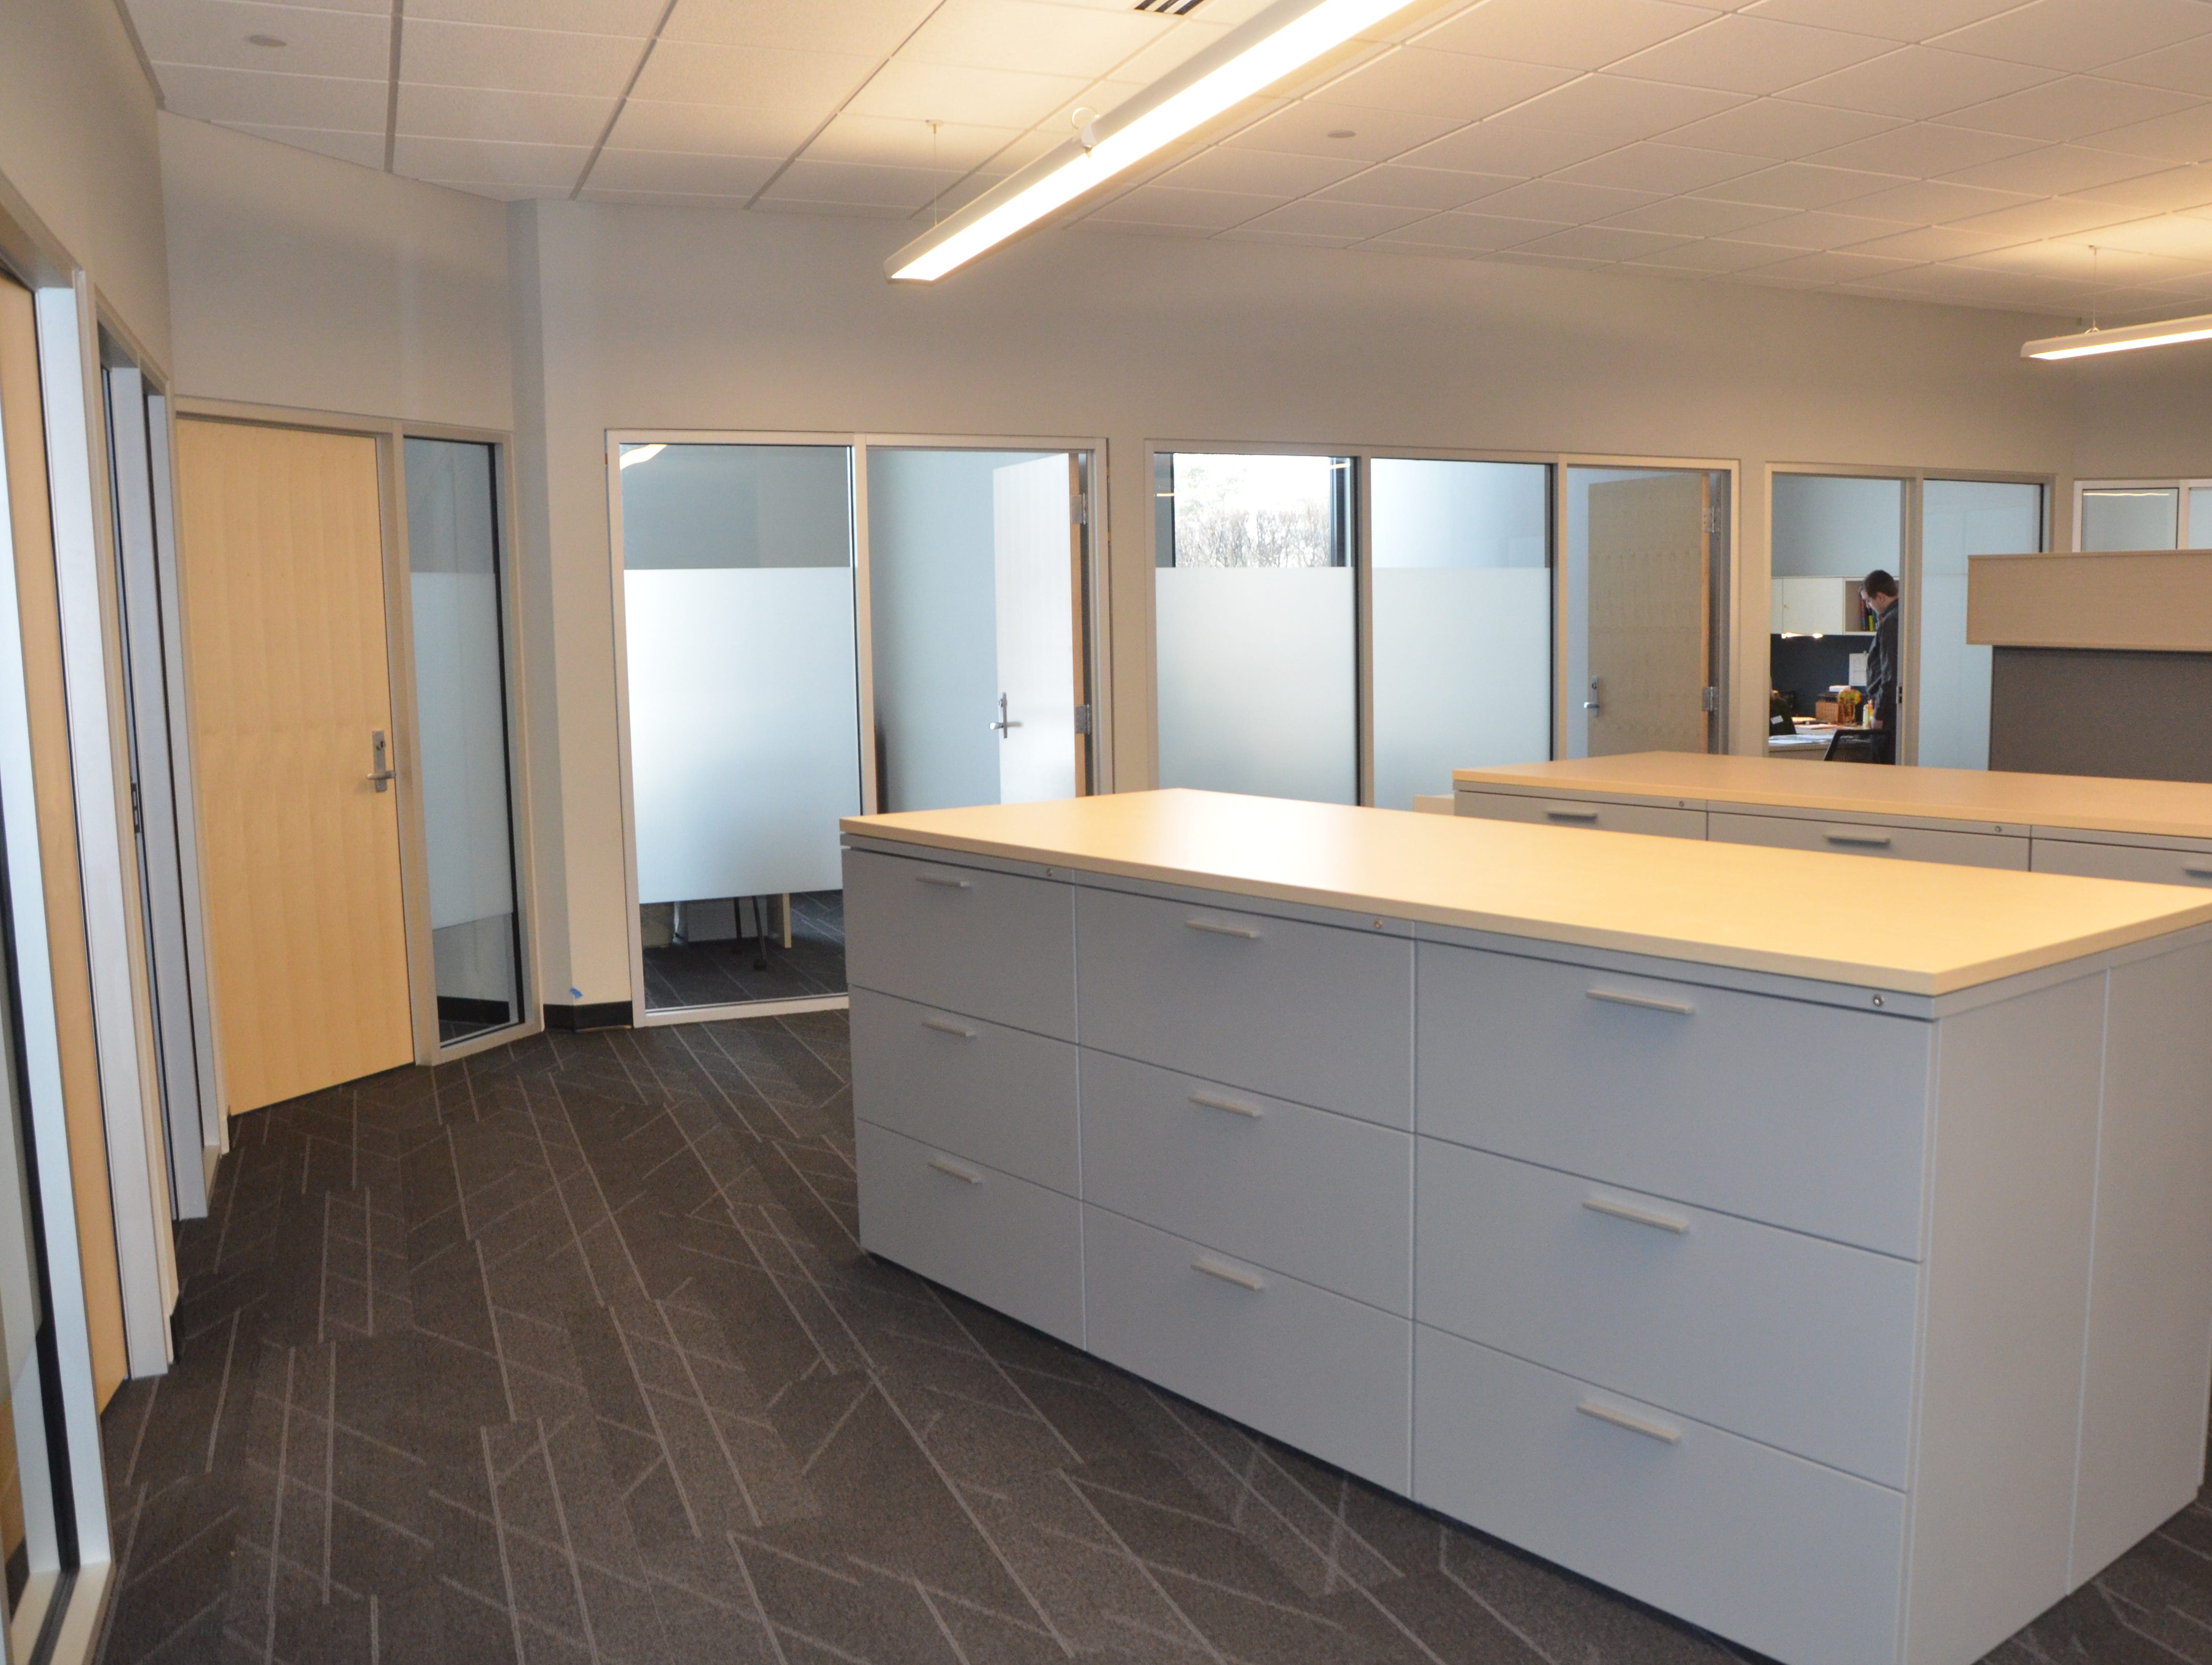 Kellogg Community College's Regional Manufacturing Technology Center is currently undergoing a $4.3 million renovation of its 29-year-old facility, involving refurbished classrooms, offices and resource room, as well as a larger conference room for the building.